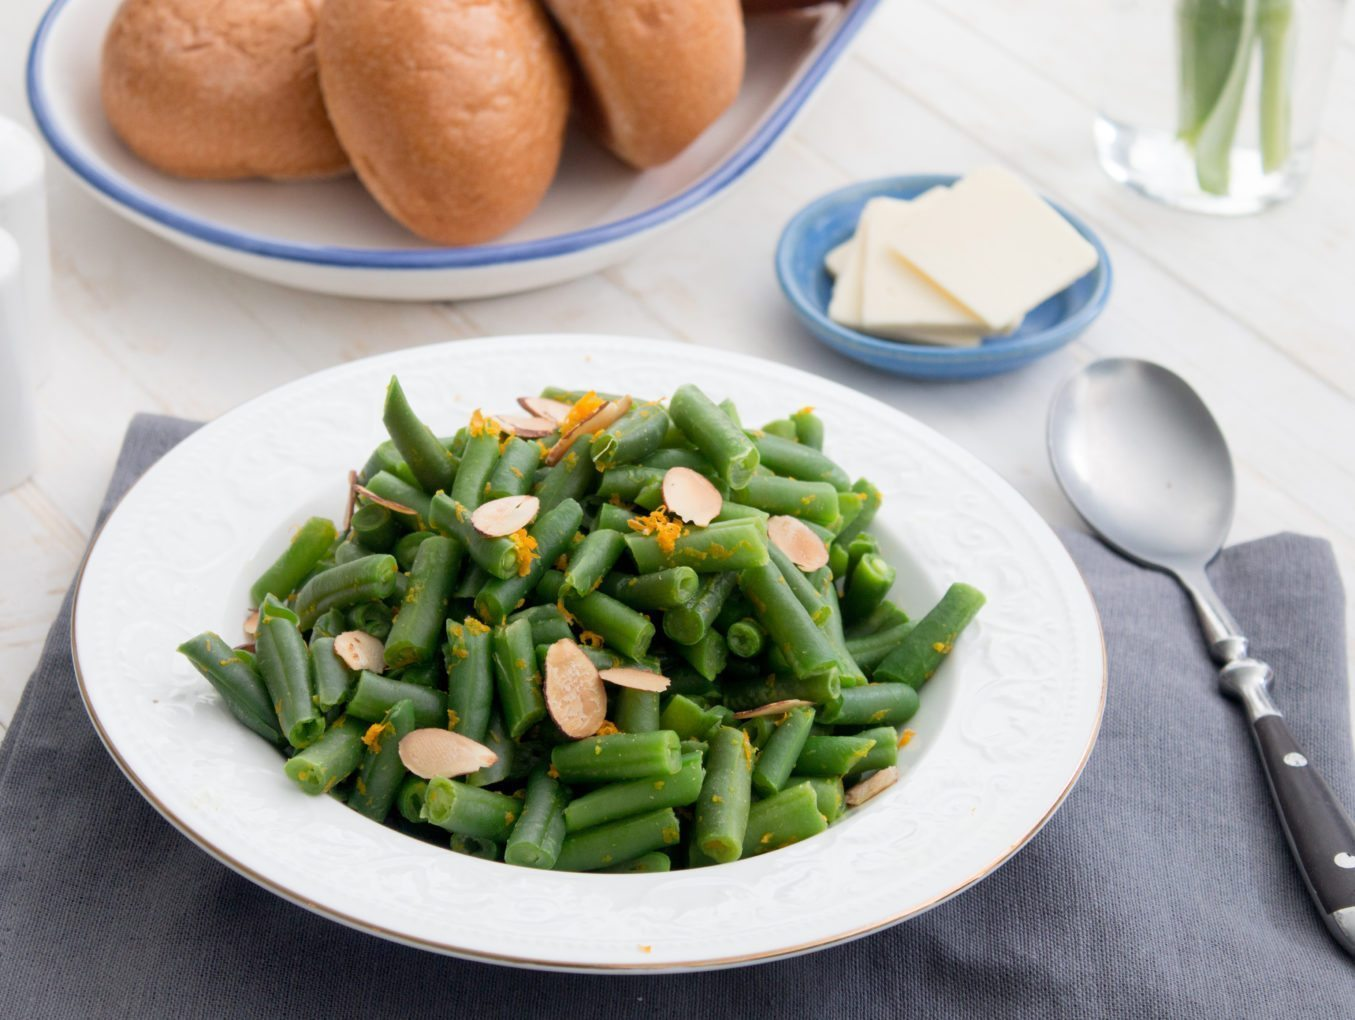 Green Beans With Orange and Almonds